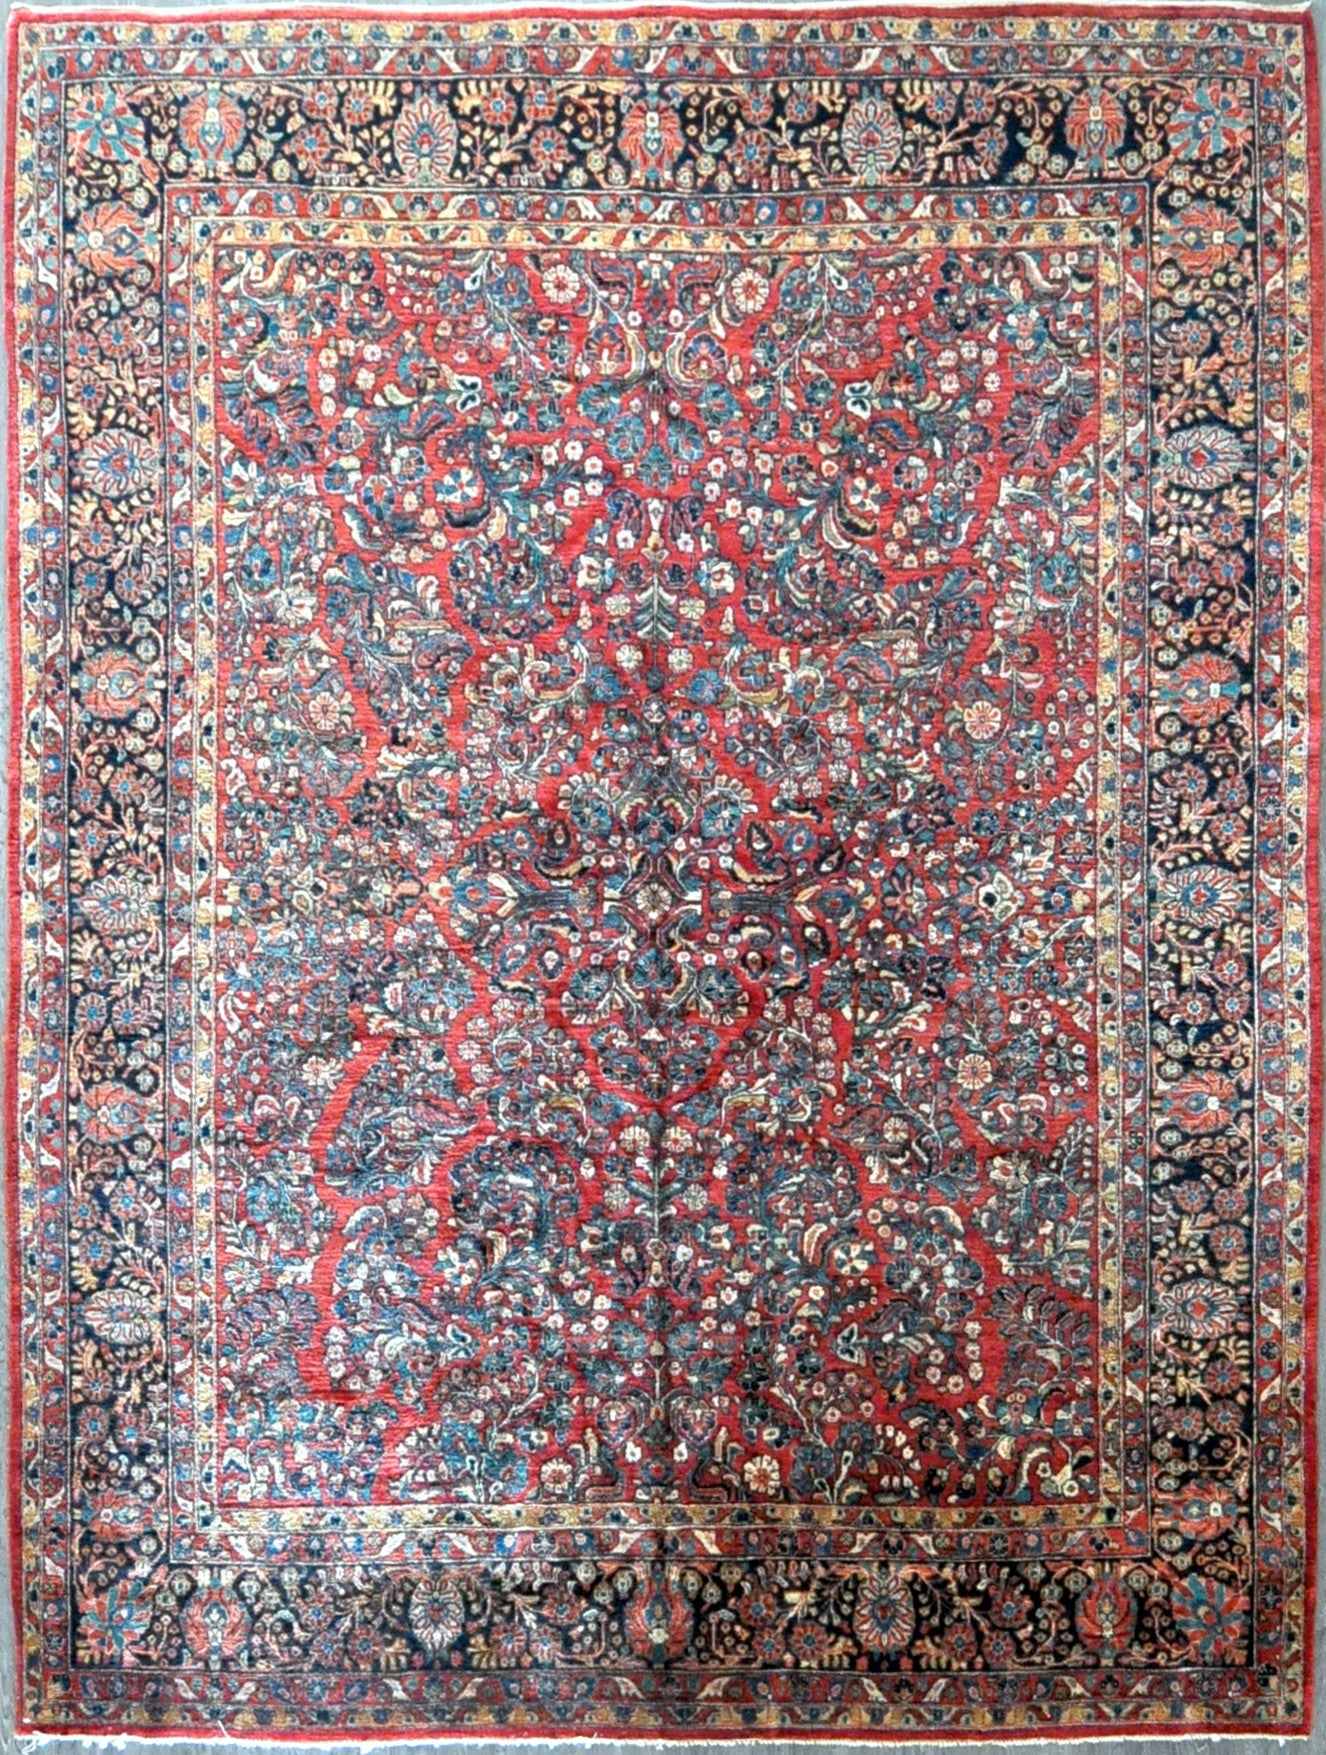 9x11.7 persian antique sarouk #49601